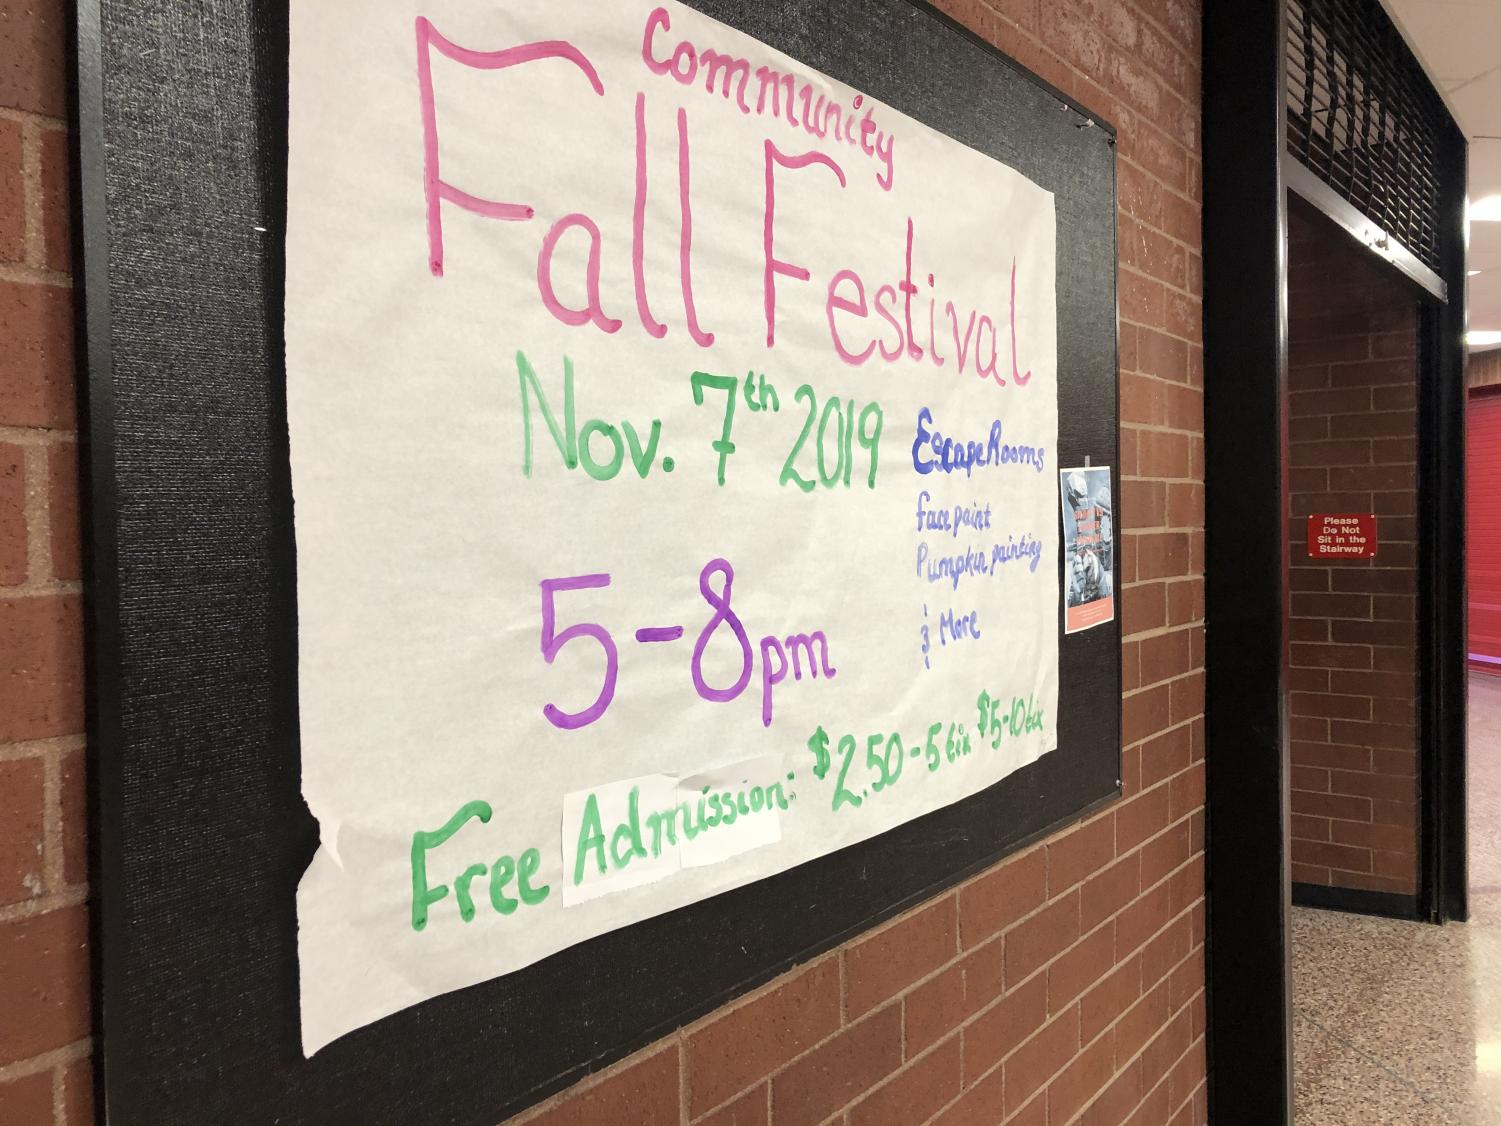 The Rangeview Fall Festival takes place tonight. The festival is from 5-8 p.m. Come enjoy escape rooms, face painting, pumpkin painting, and more!